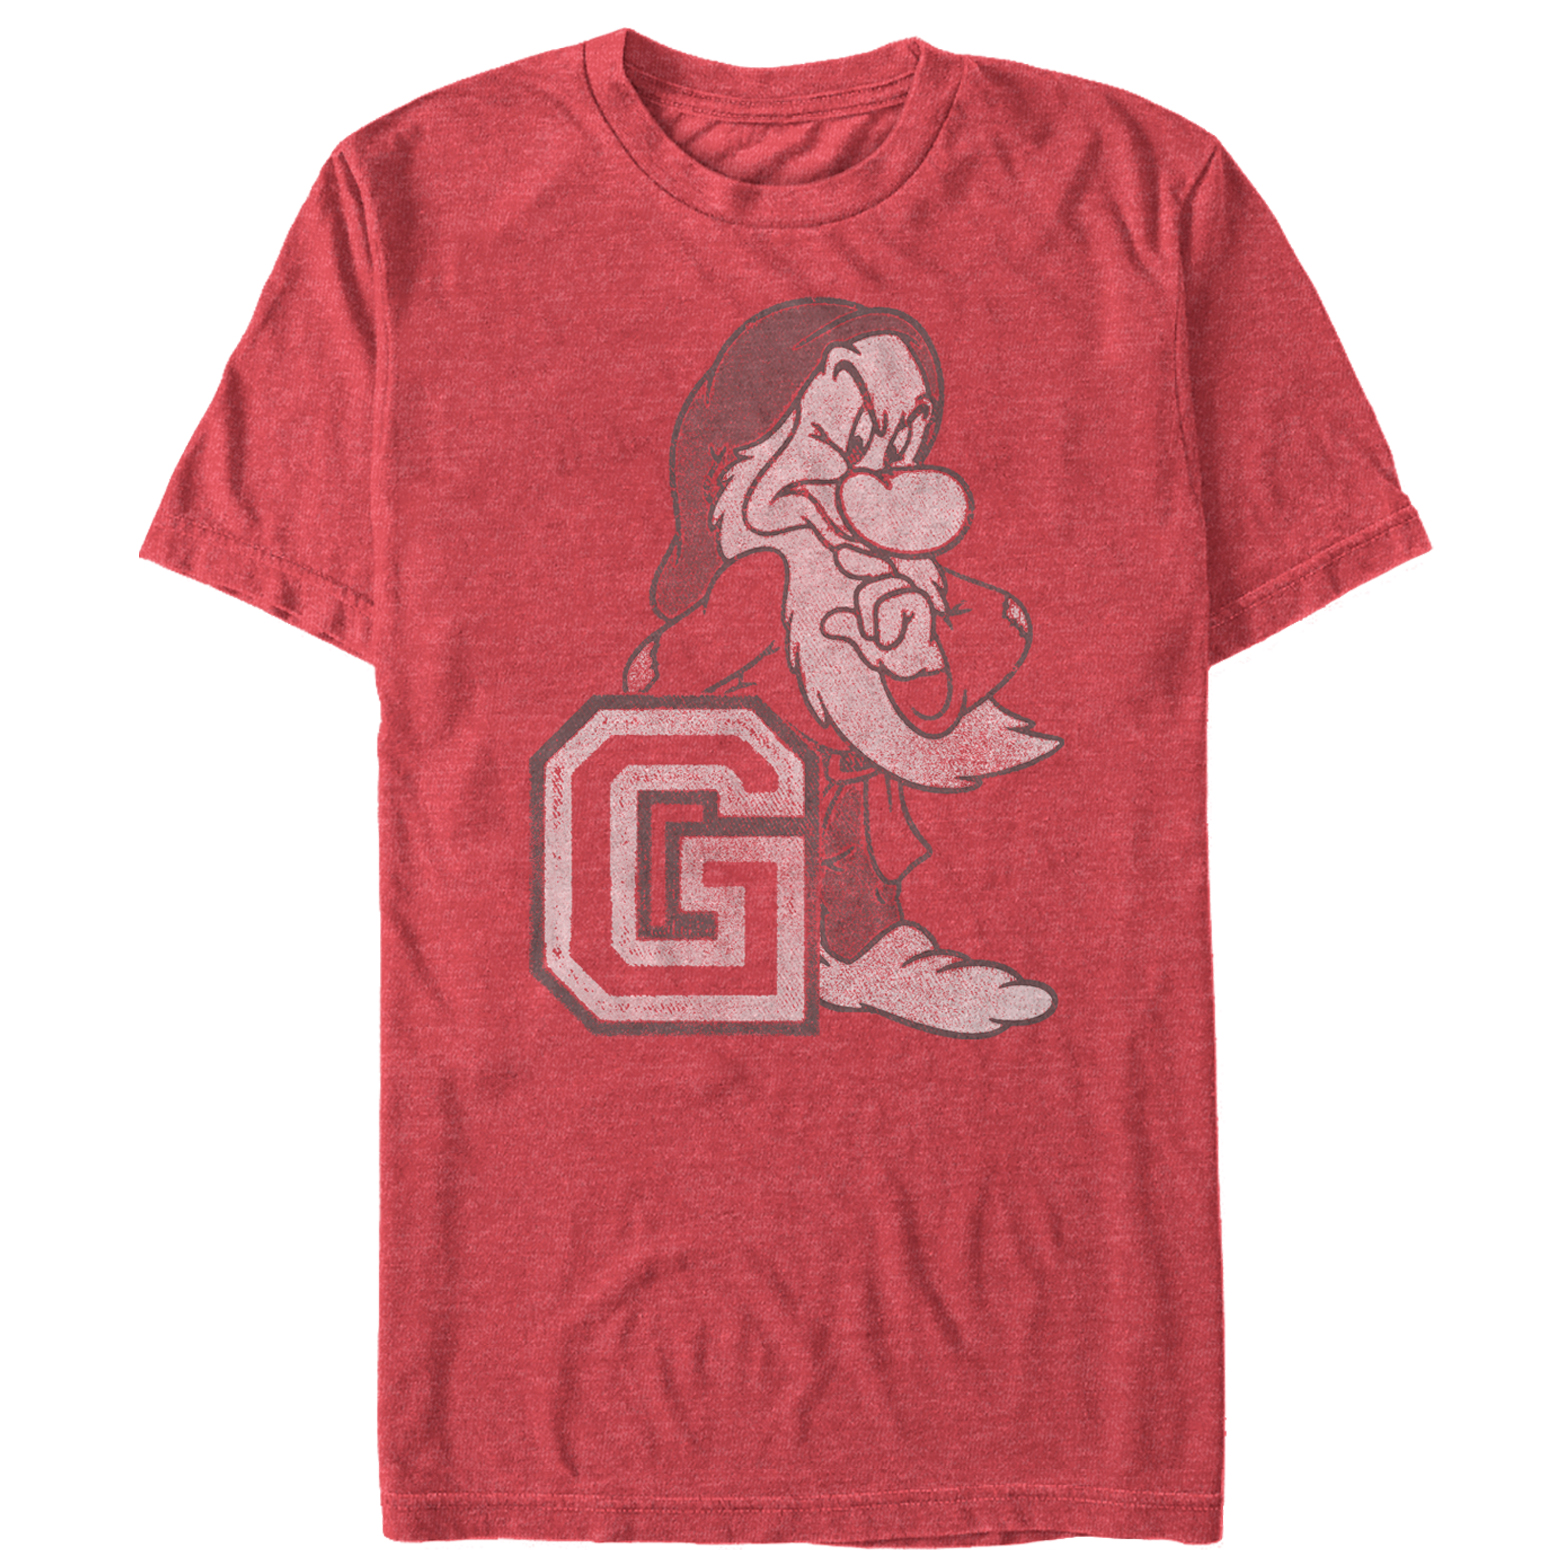 Snow White and the Seven Dwarves Men's Athletic Grumpy T-Shirt